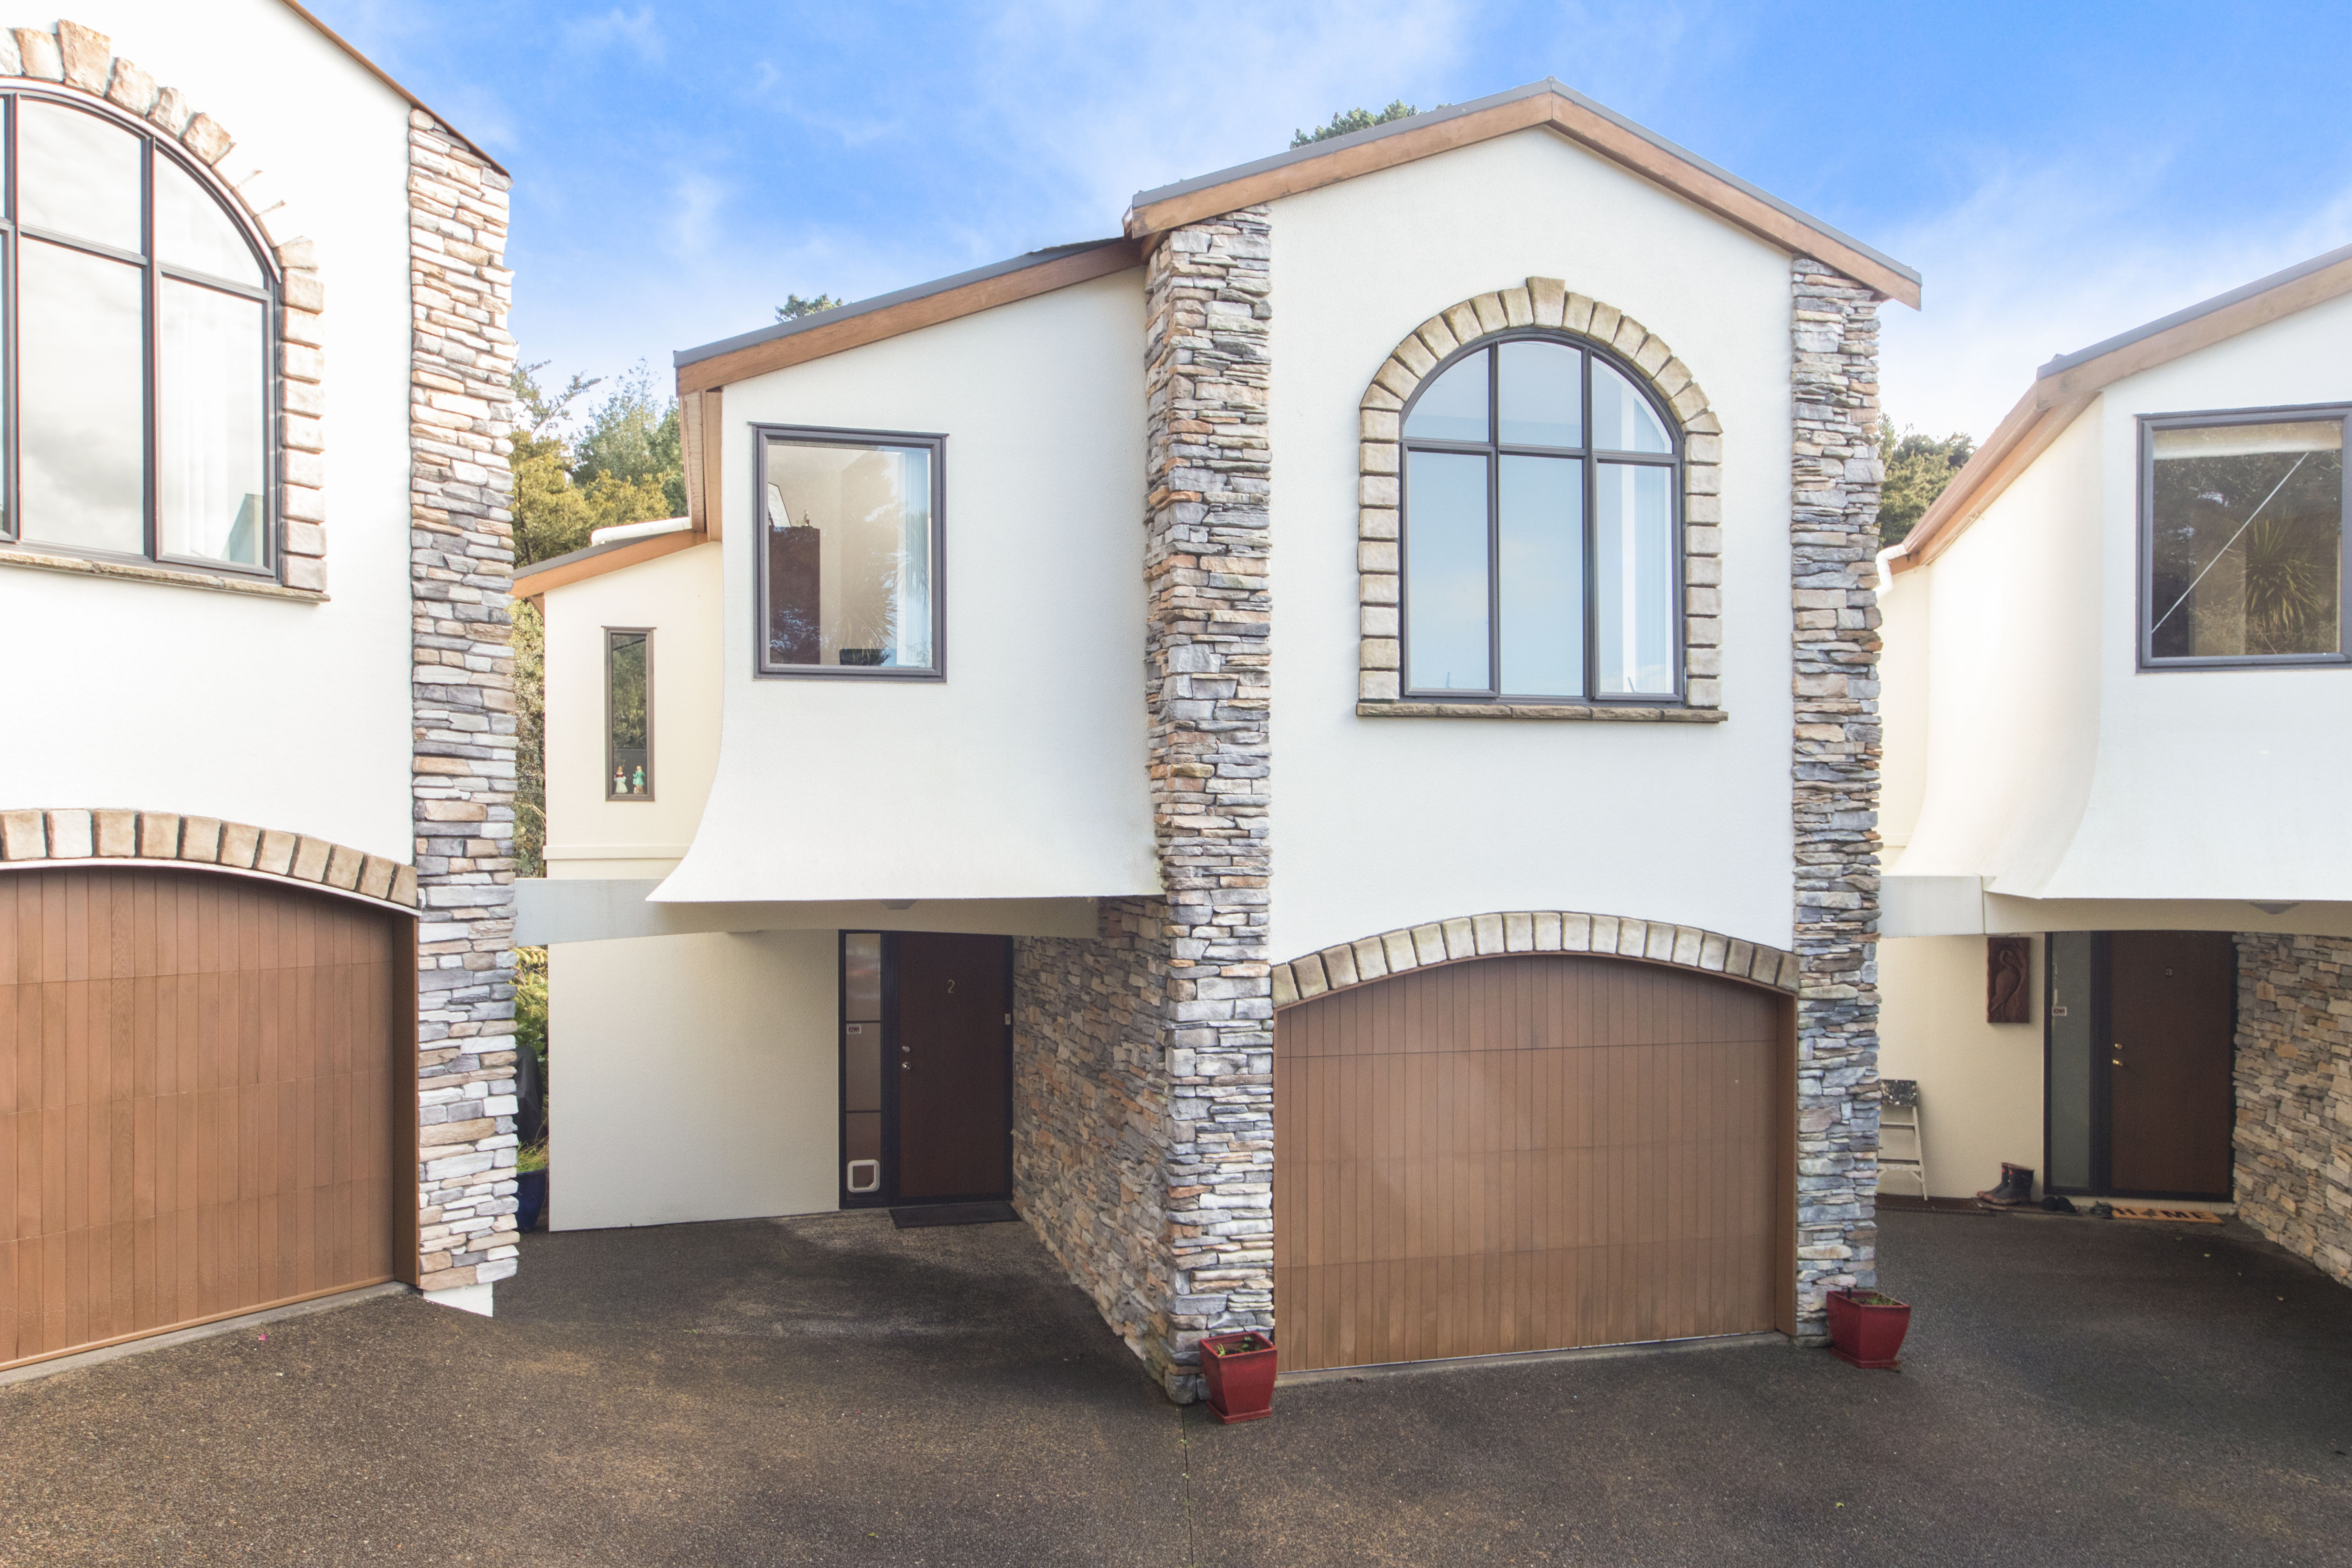 67418Open home times